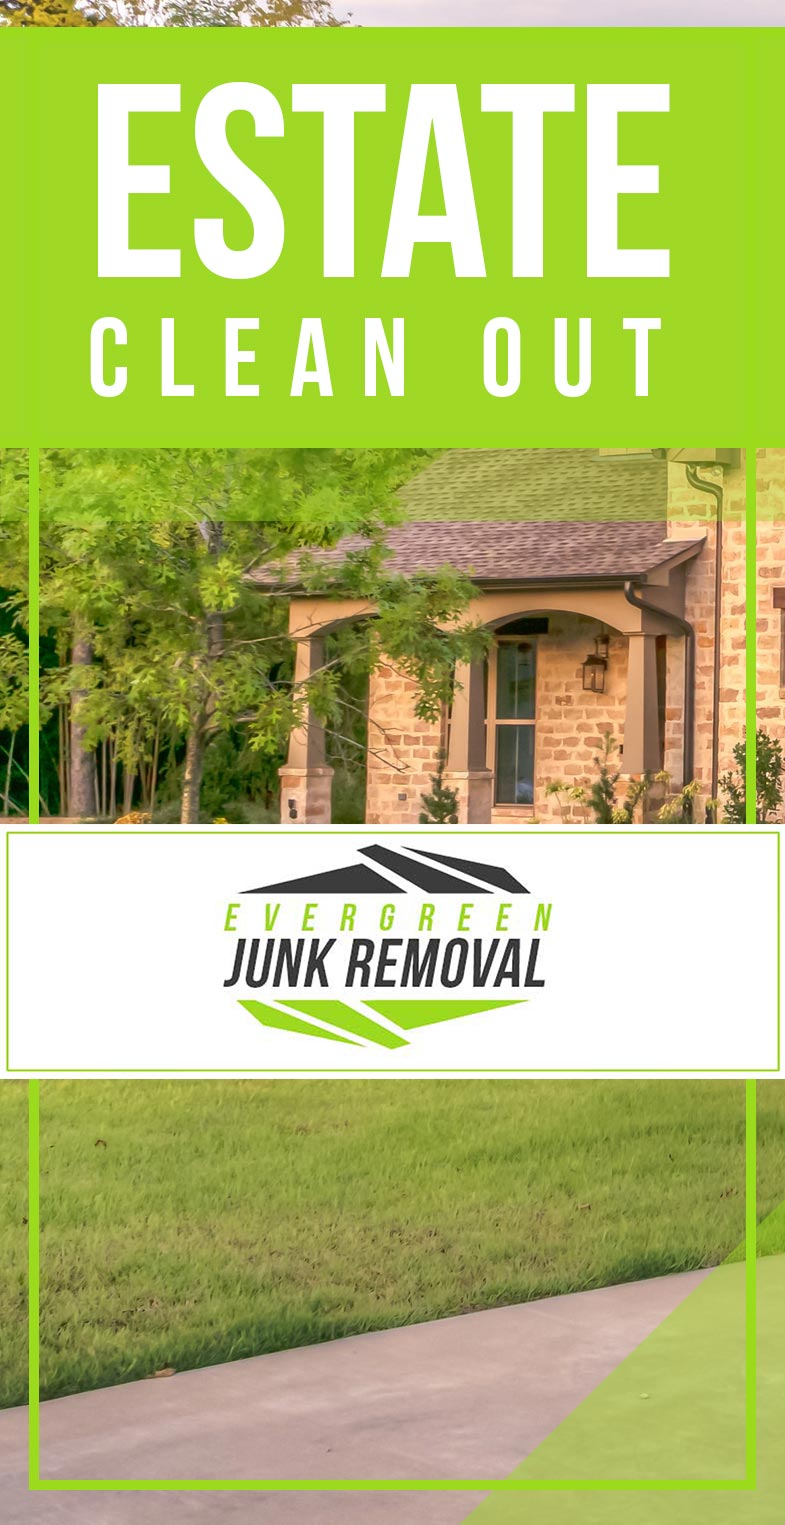 Junk Removal North Palm Beach Estate Clean Out